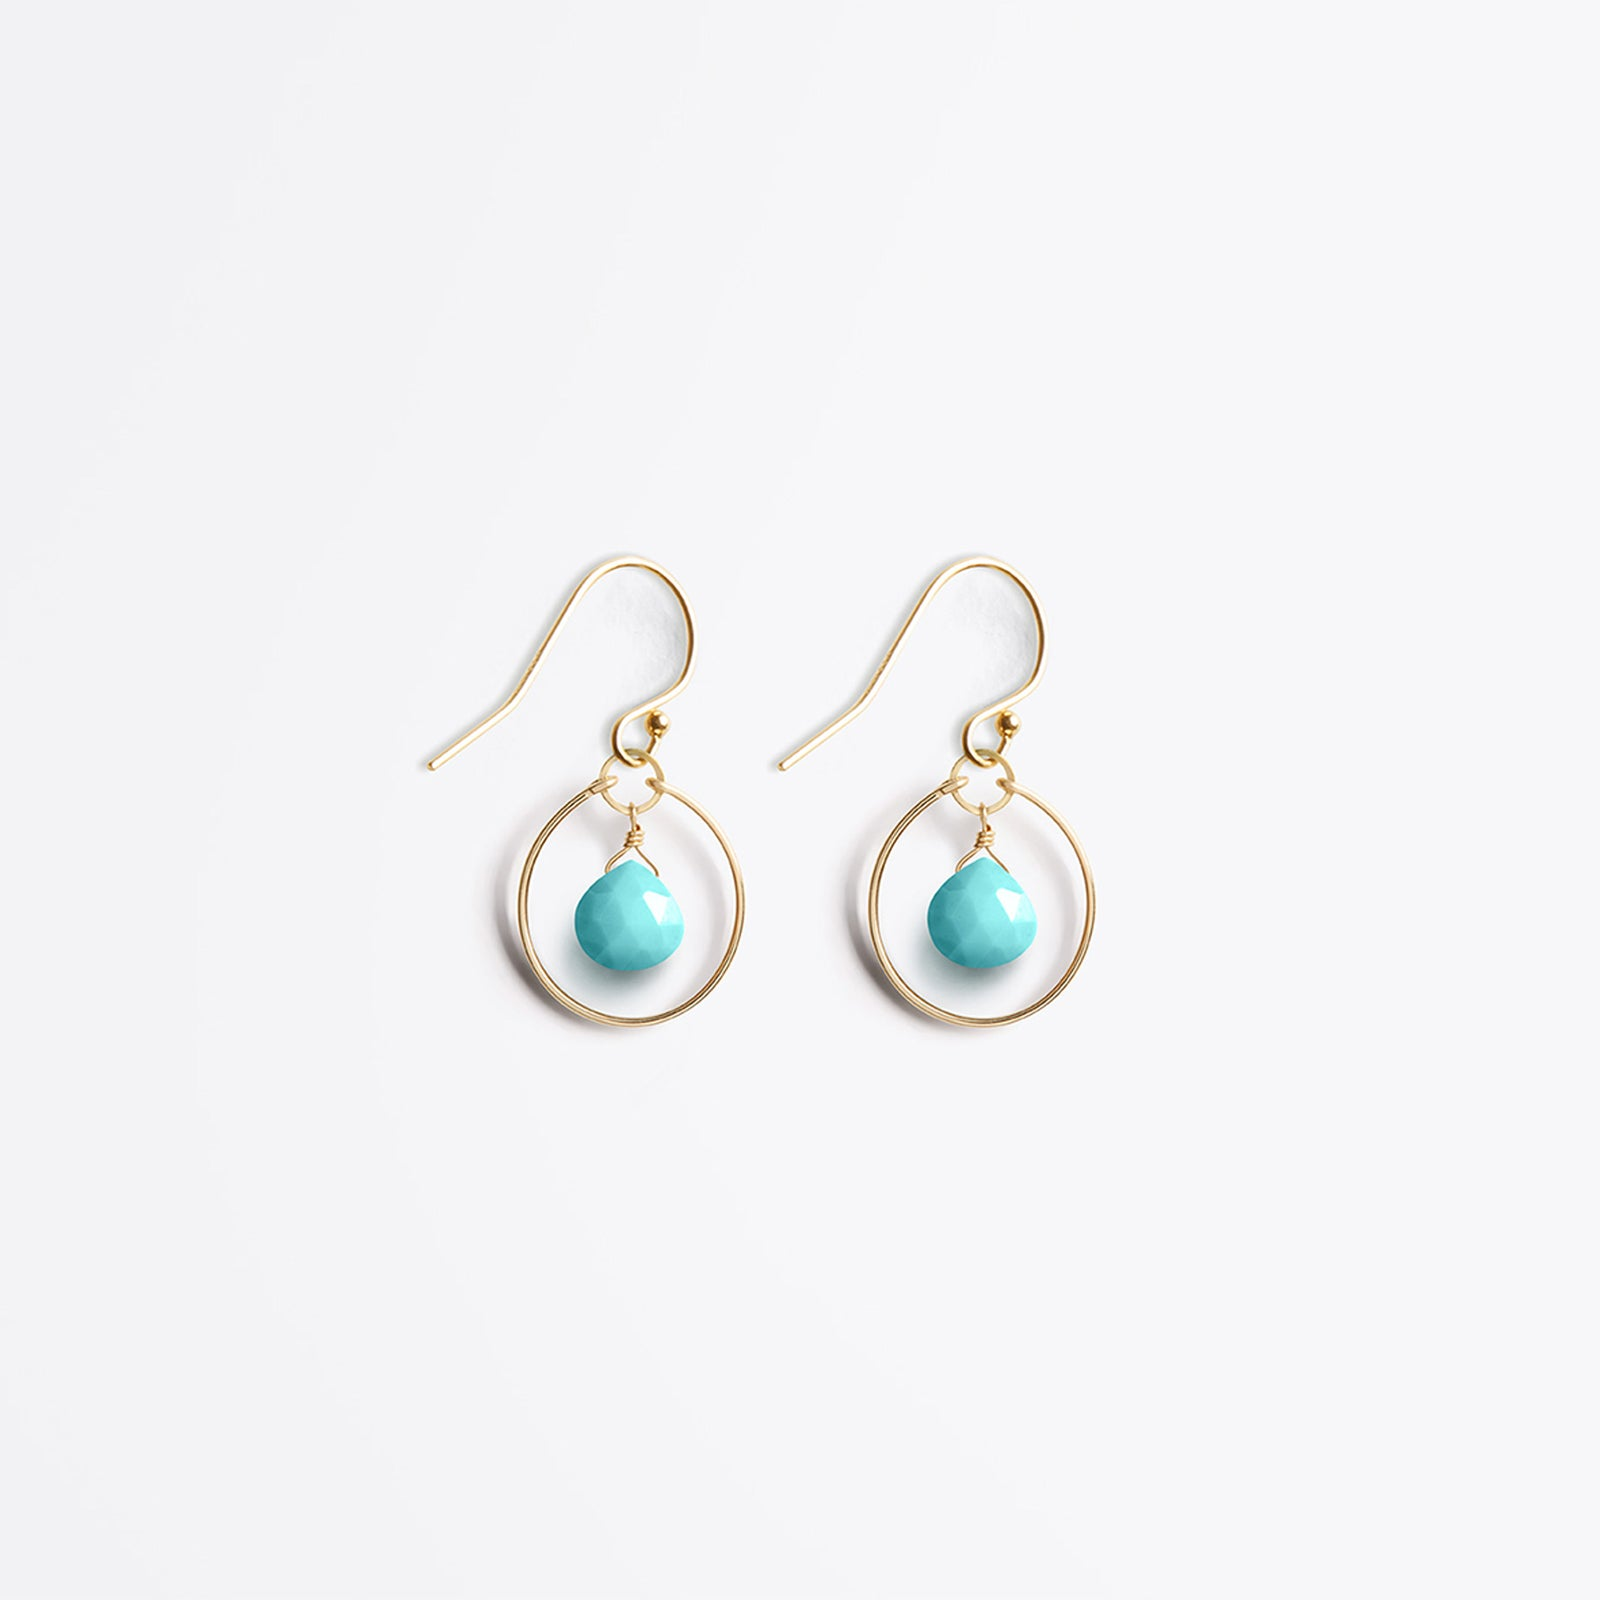 Wanderlust Life Ethically Handmade jewellery made in the UK. Minimalist gold and fine cord jewellery. petite stella orb earring, arizona turquoise